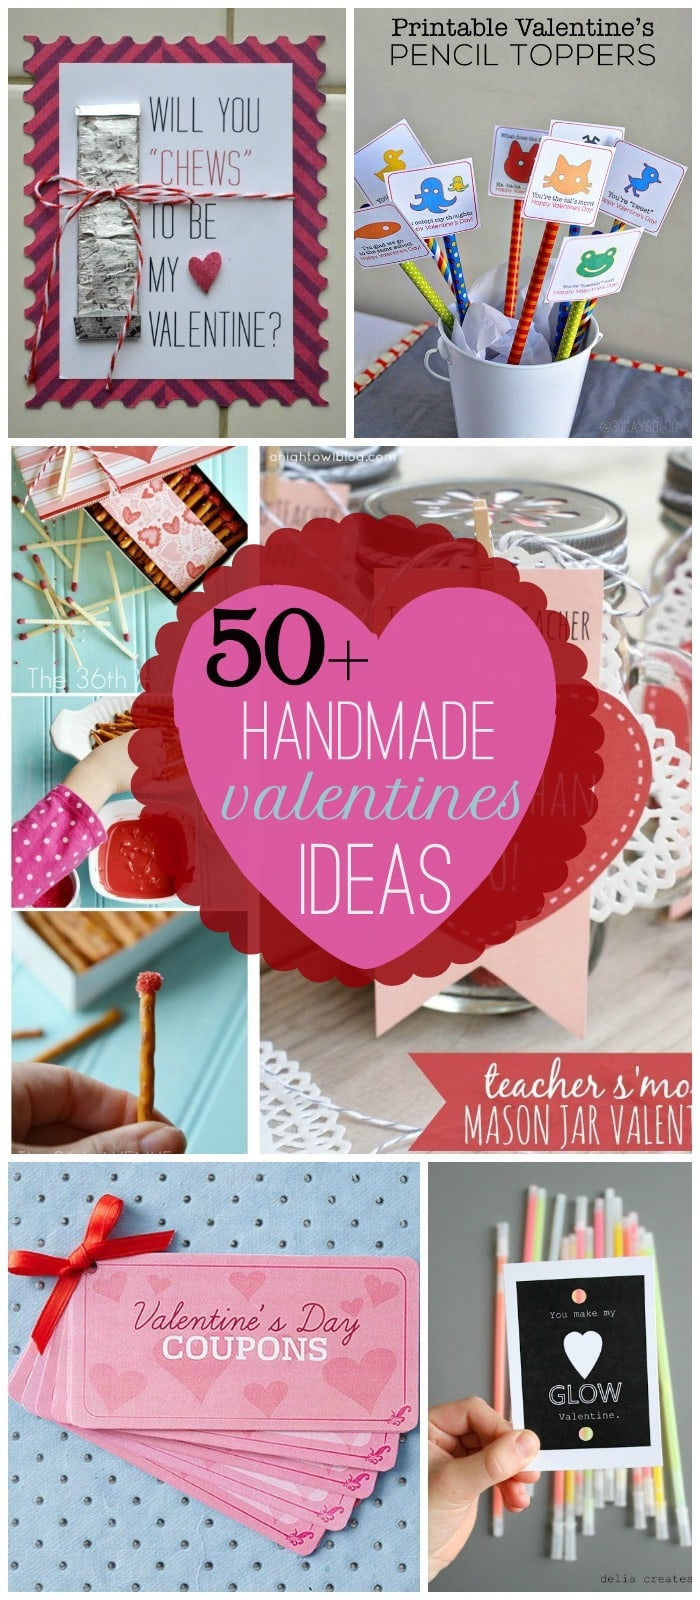 50+ Handmade Valentines Ideas on { lilluna.com } So many cute and easy ideas!